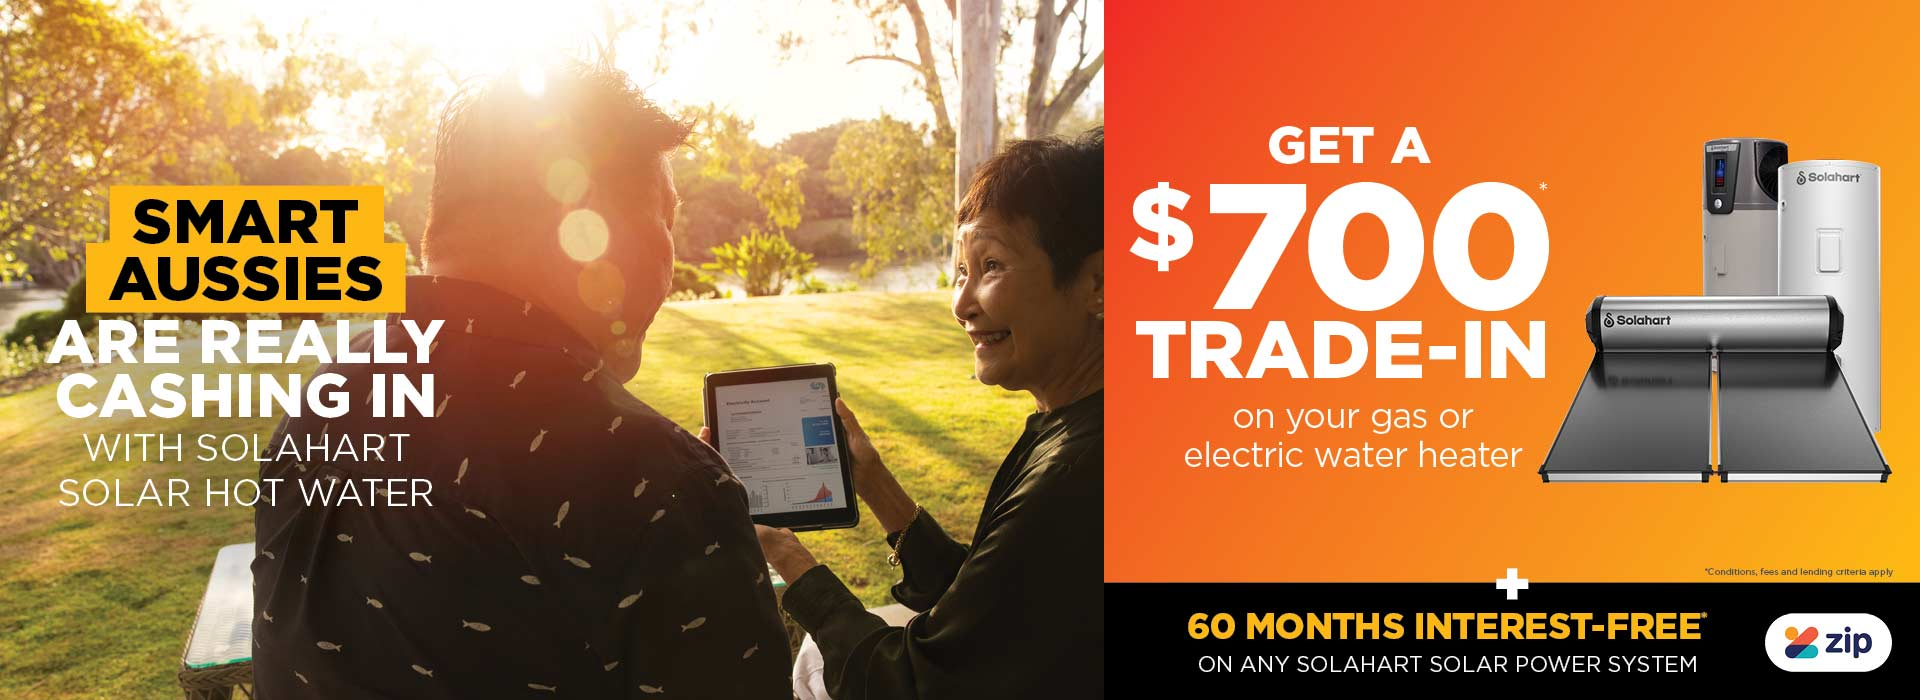 Switch to solar hot water now and get $700 trade in from Solahart